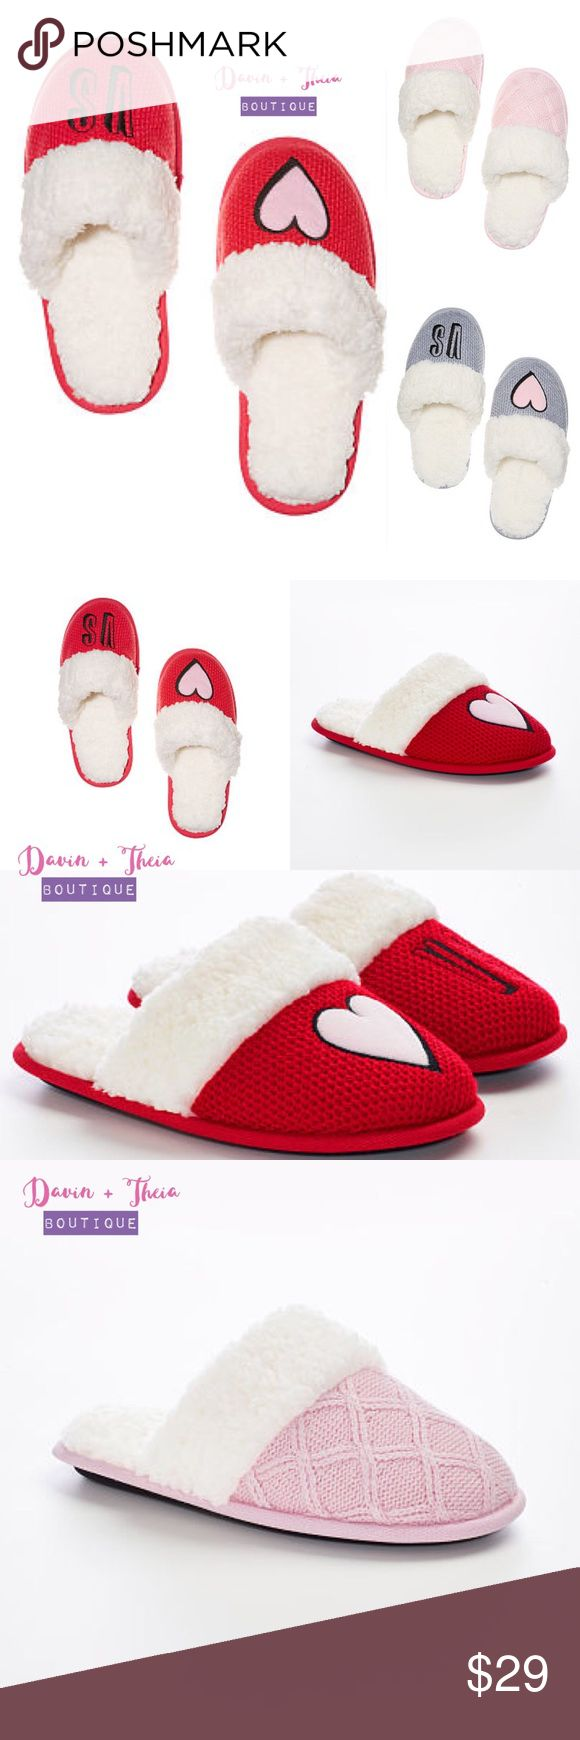 Victoria's Secret Cozy Slipper BRAND NEW  These embroidered knit slippers were made to keep toes toasty, with faux-fur trim and lining. * Diamond knit with faux-fur trim and lining * Embroidery at top * Rubber sole * Imported viscose/nylon/polyester * Sizes S(5-6), M(7-8), L(9-10), XL(11-12) * Hand wash  Available Size: L(9-10) Available Color: Red, Pink, Gray(Arriving Soon)  Please ask questions before purchasing. PRICE is FIRM 10% OFF BUNDLE NO Trades Victoria's Secret Shoes Slippers